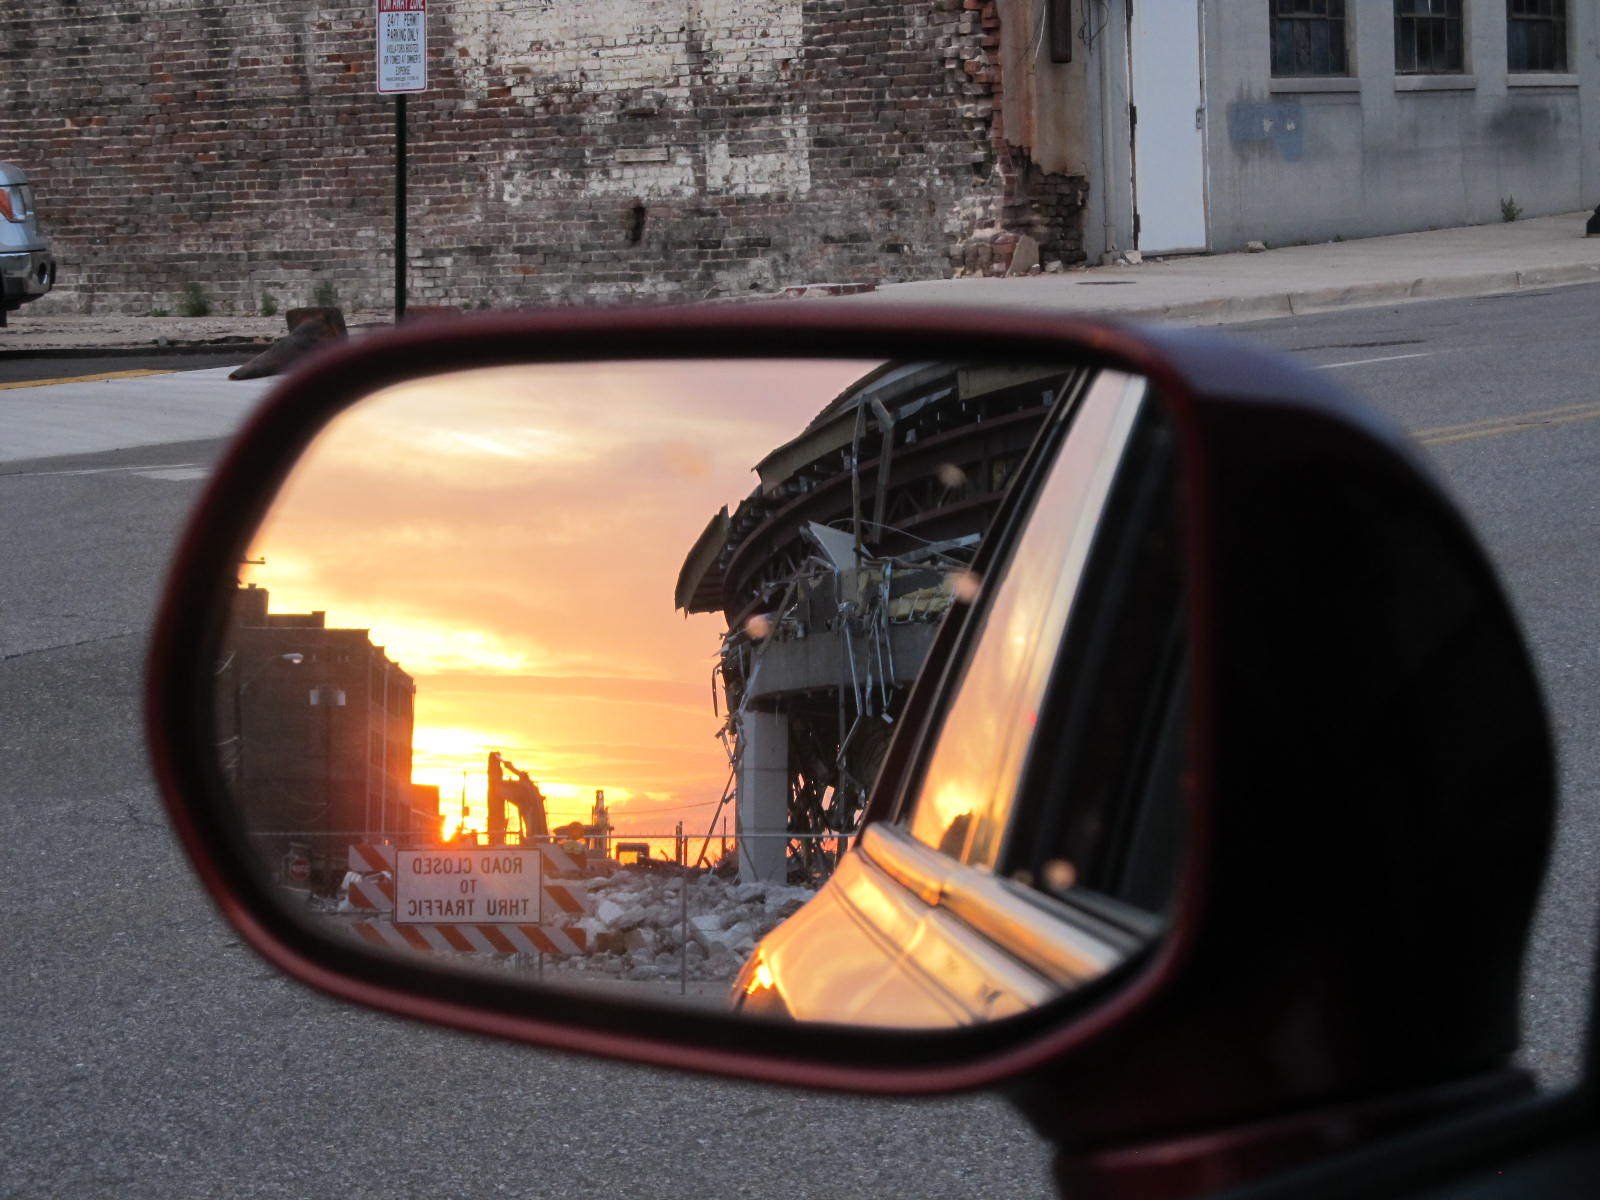 Deconstruction in rearview mirror